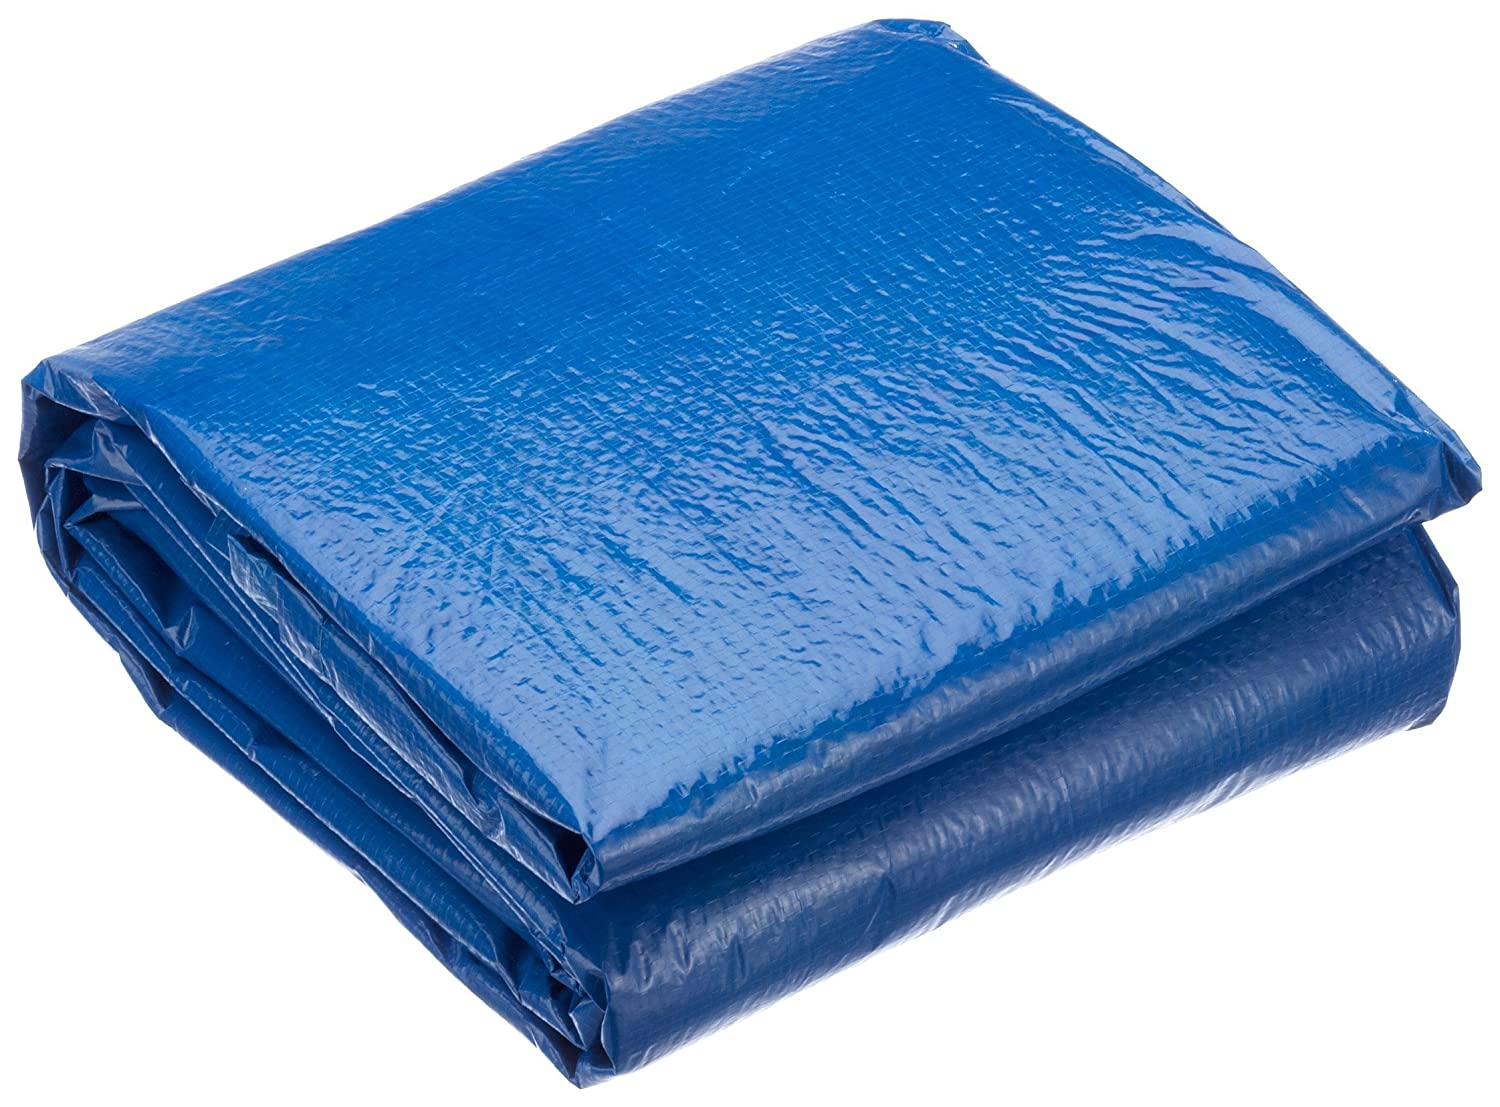 Bestway Pool Ground Cloth - Blue, 13 Ft (Old Version) 58002